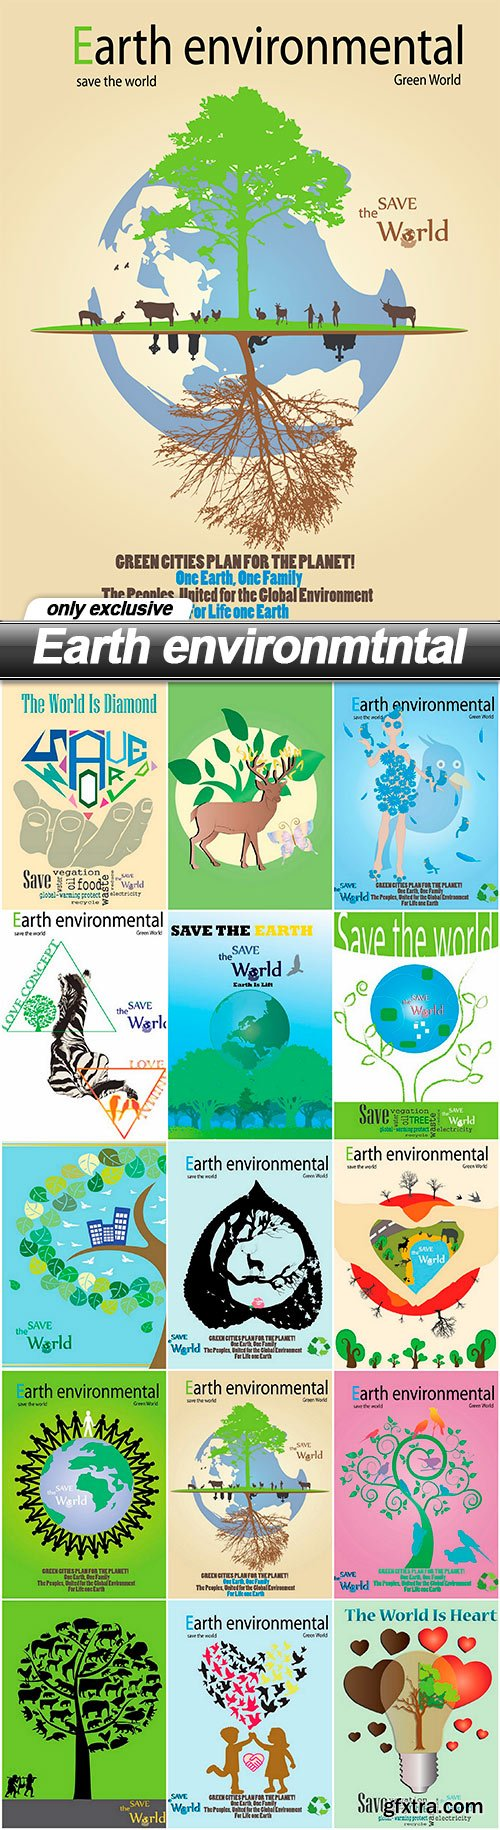 Earth environmtntal - 15 EPS